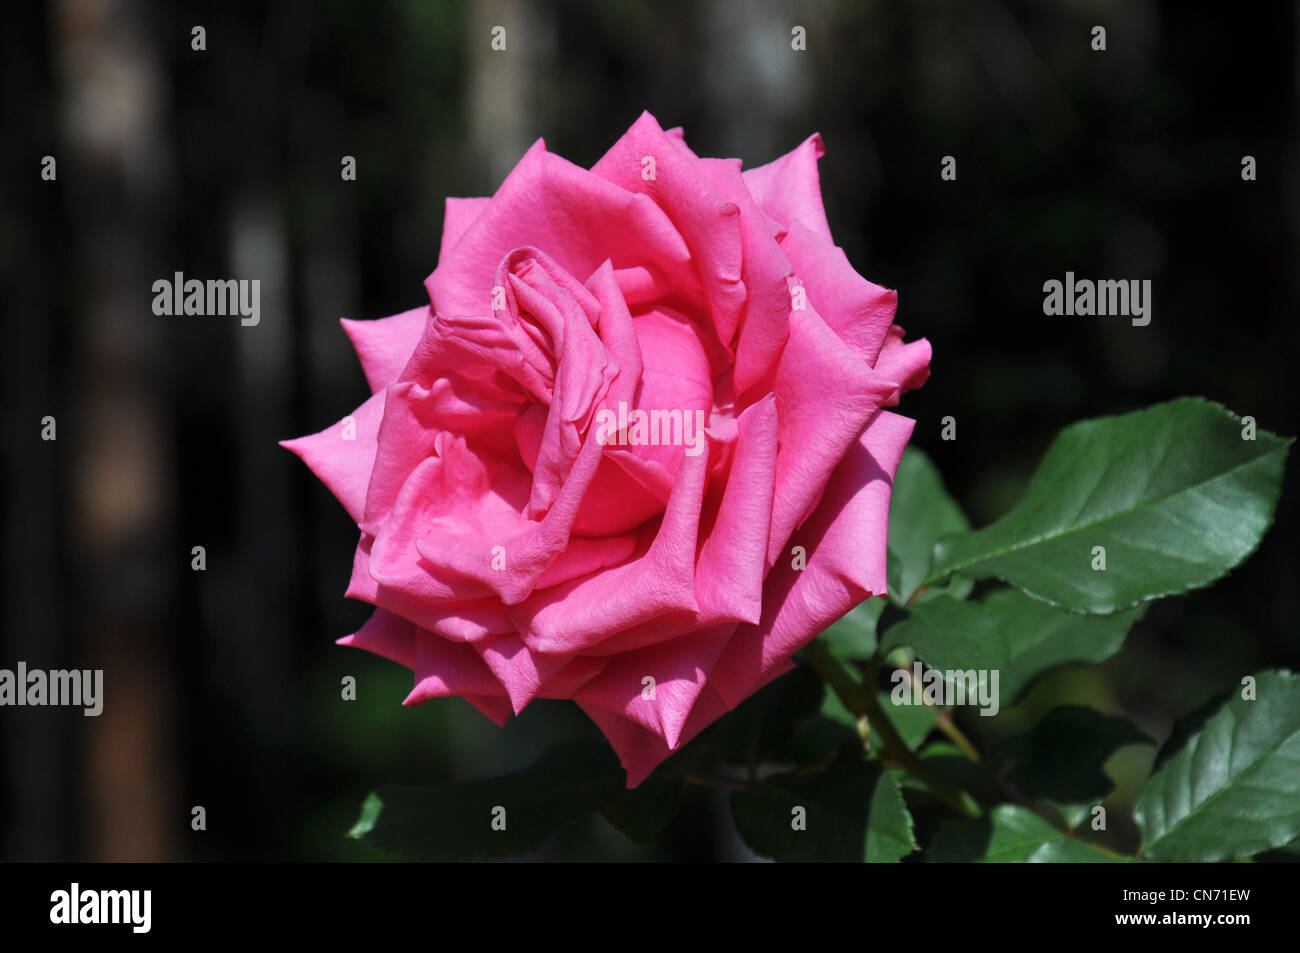 A close up of a pink rose on the plant - Stock Image